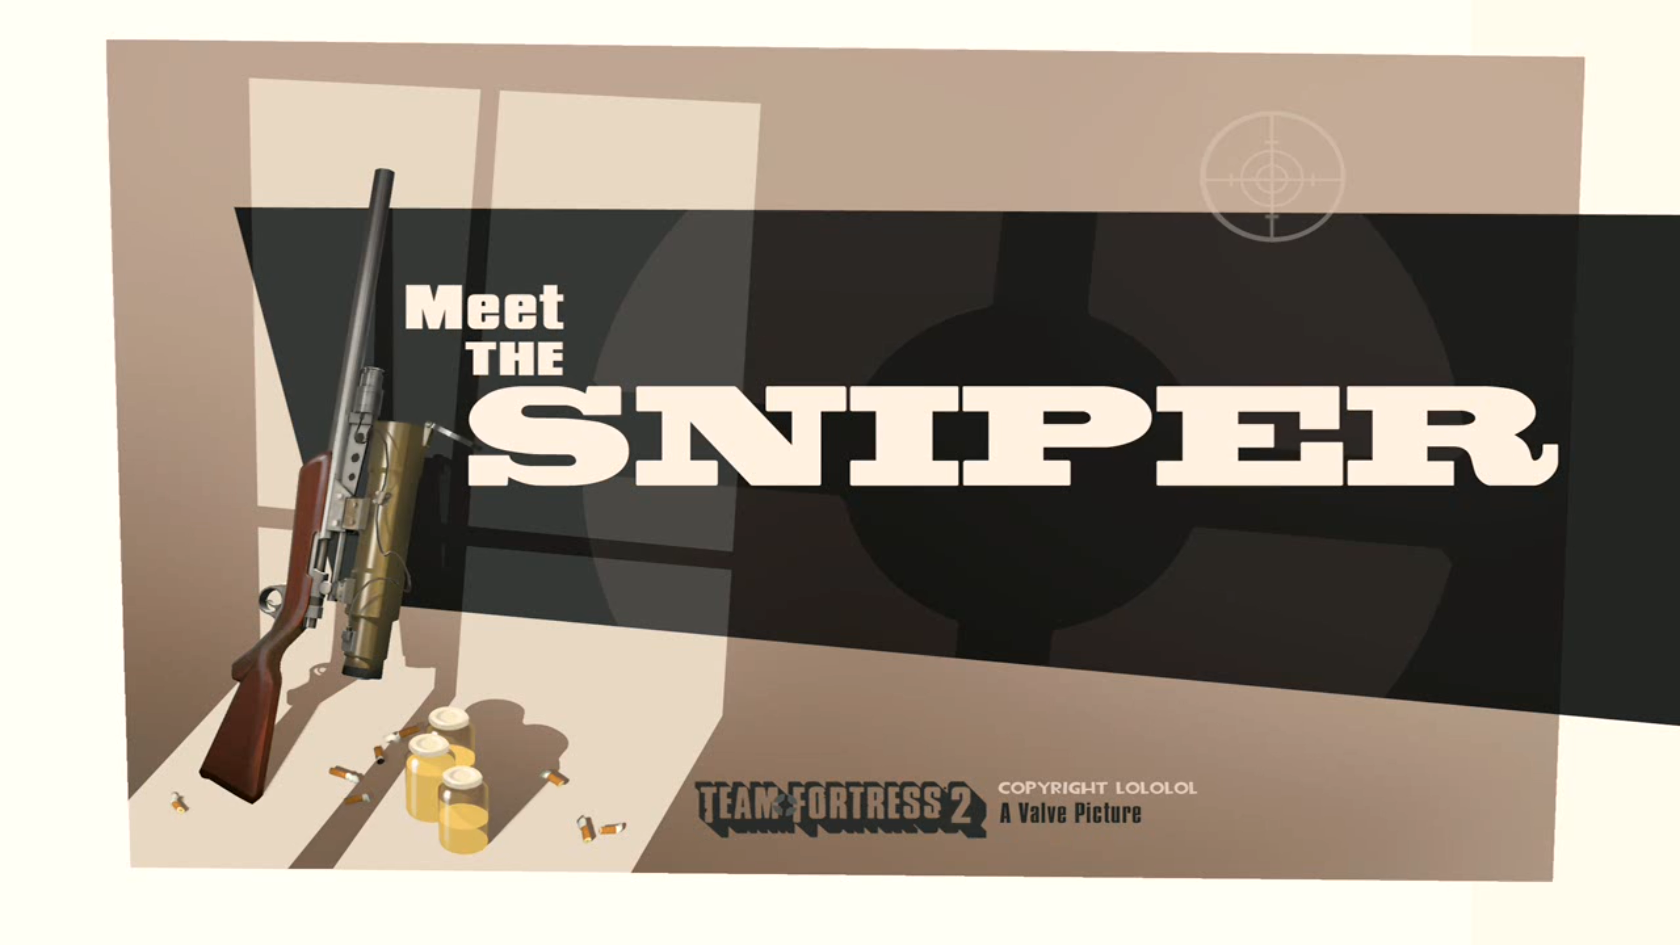 team fortress two meet the sniper